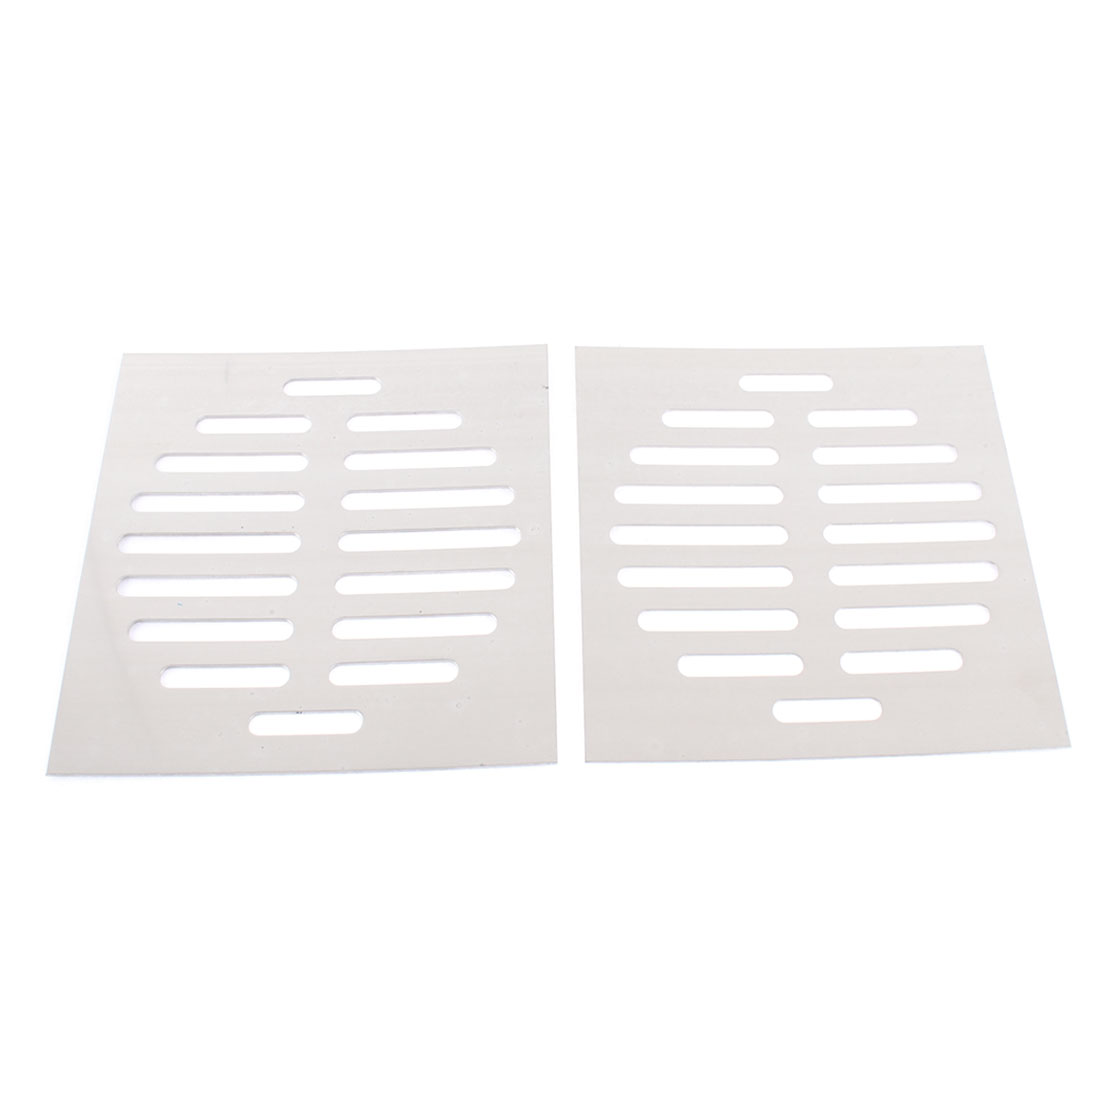 "Stainless Steel Kitchen Bathroom Square Floor Drain Cover 6"" 15cm 3pcs"